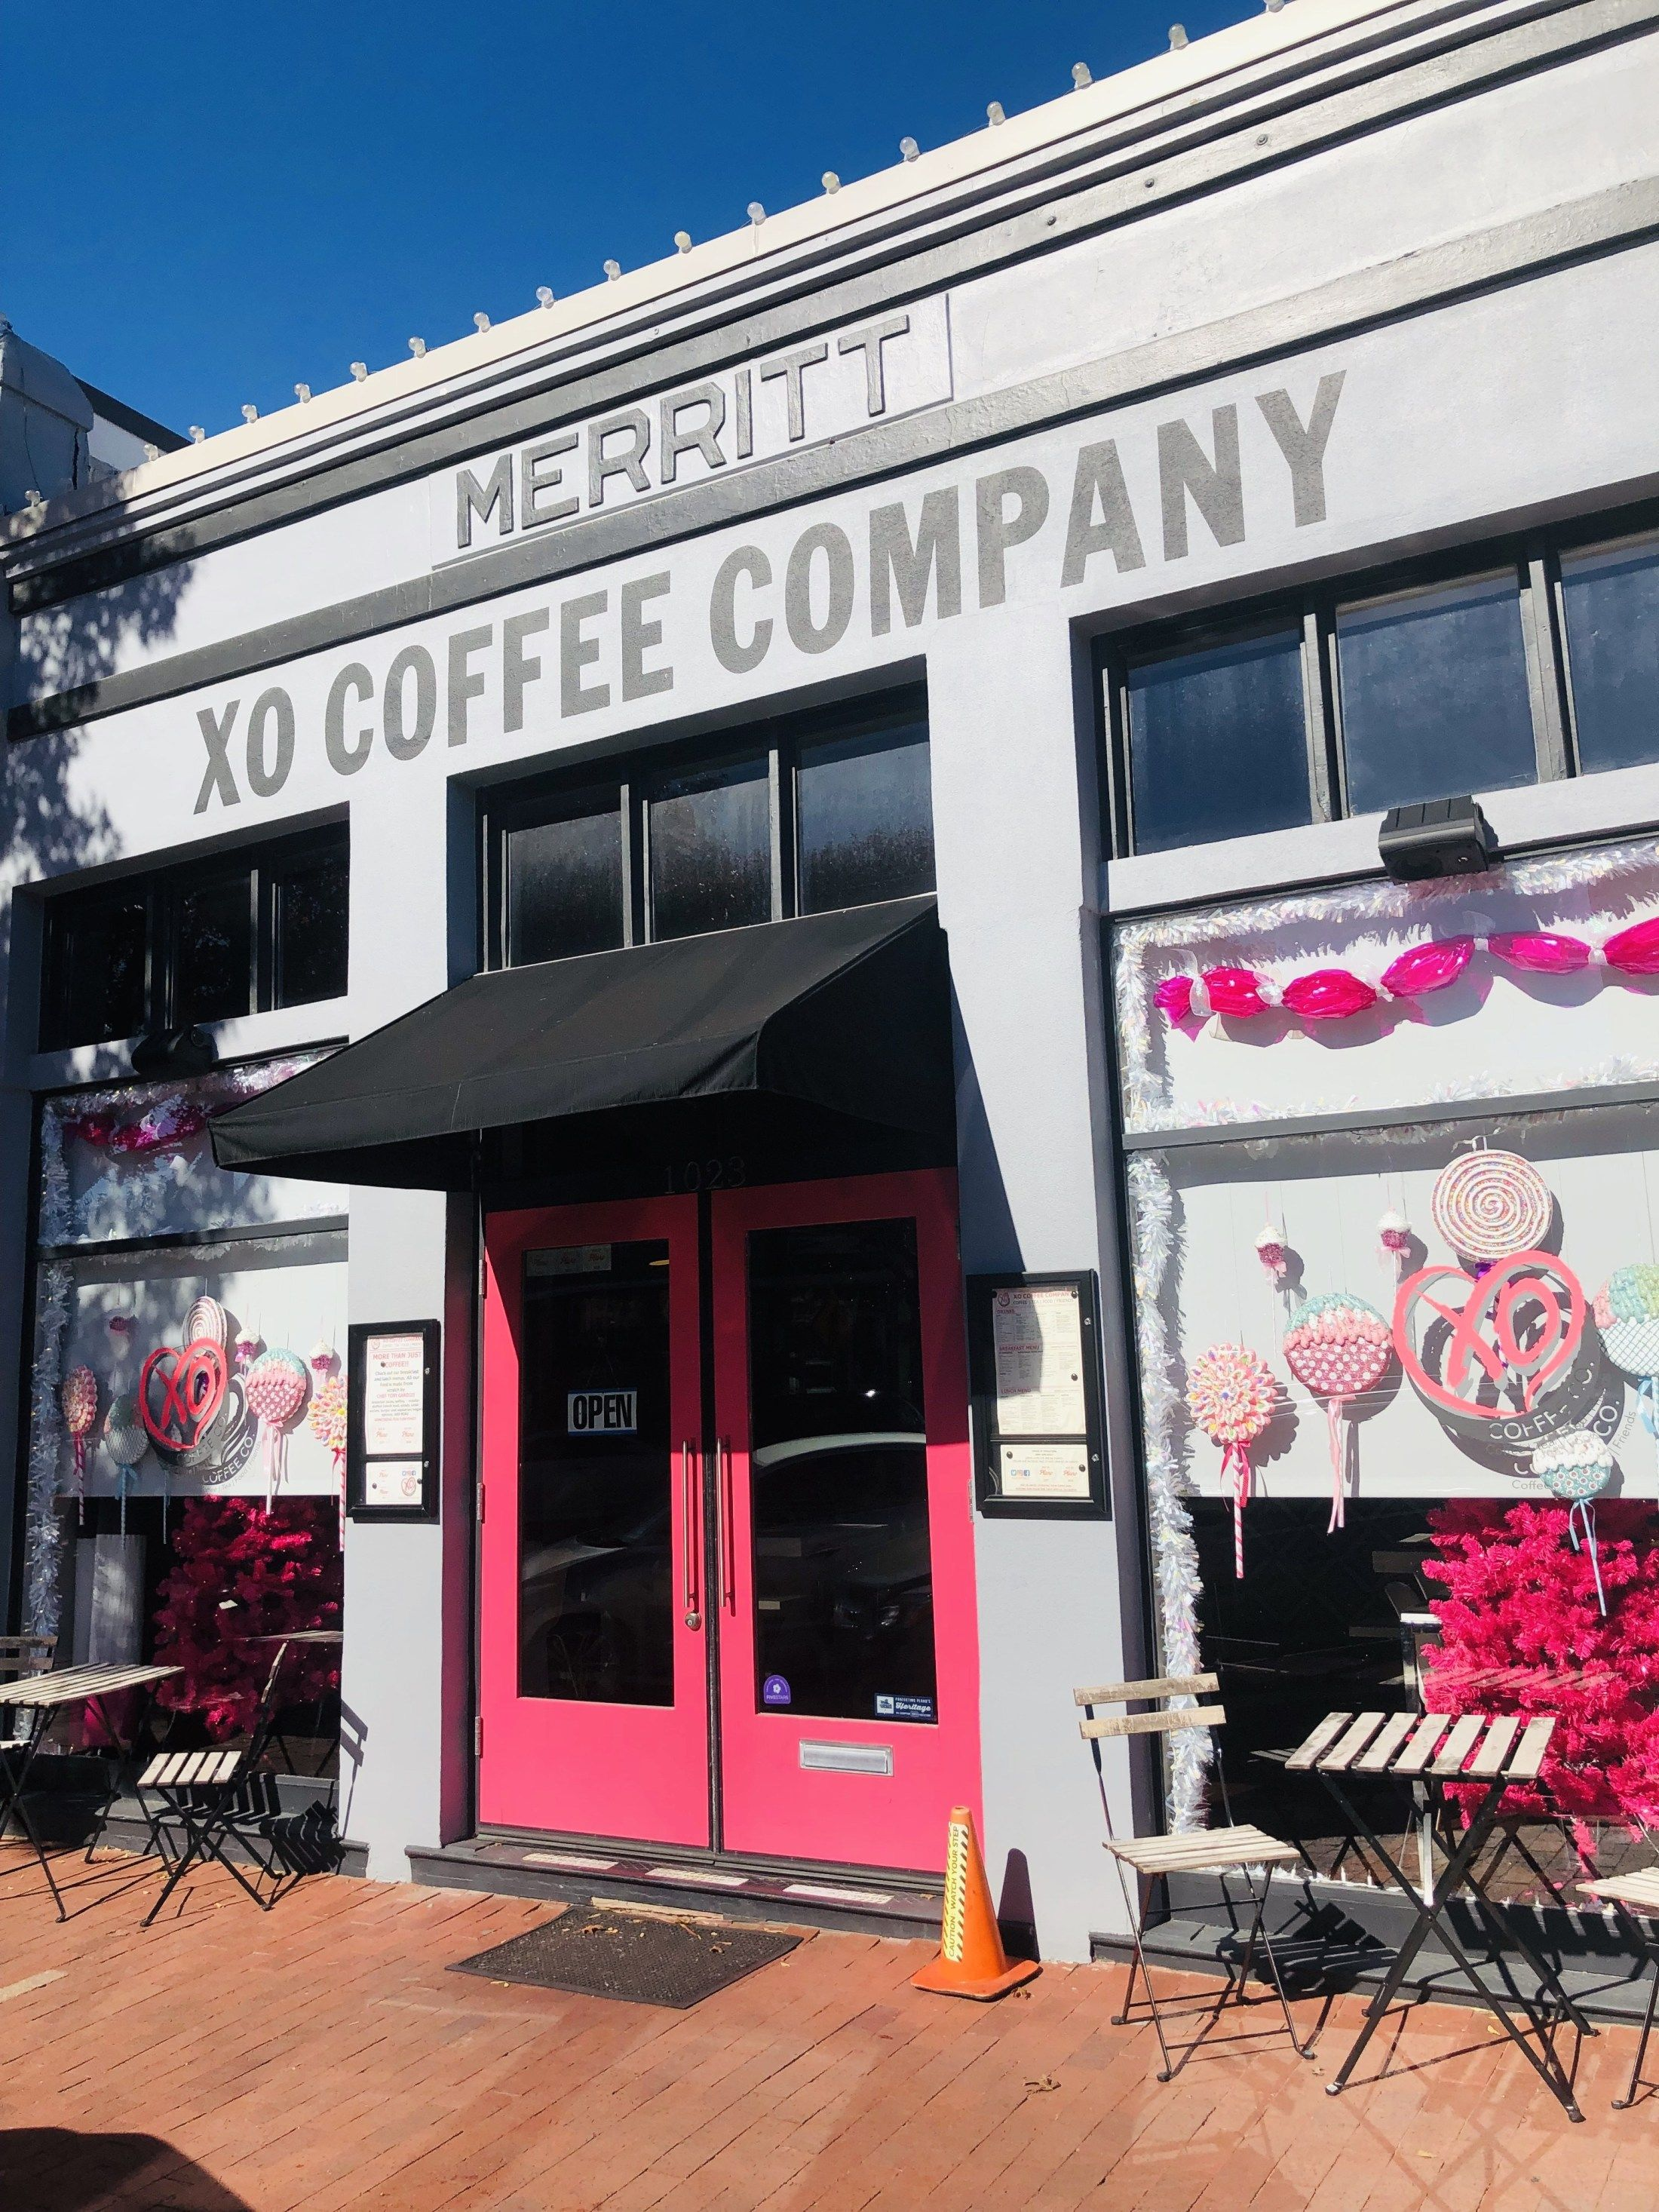 Dfw restaurants as of lately cute coffee shop places to